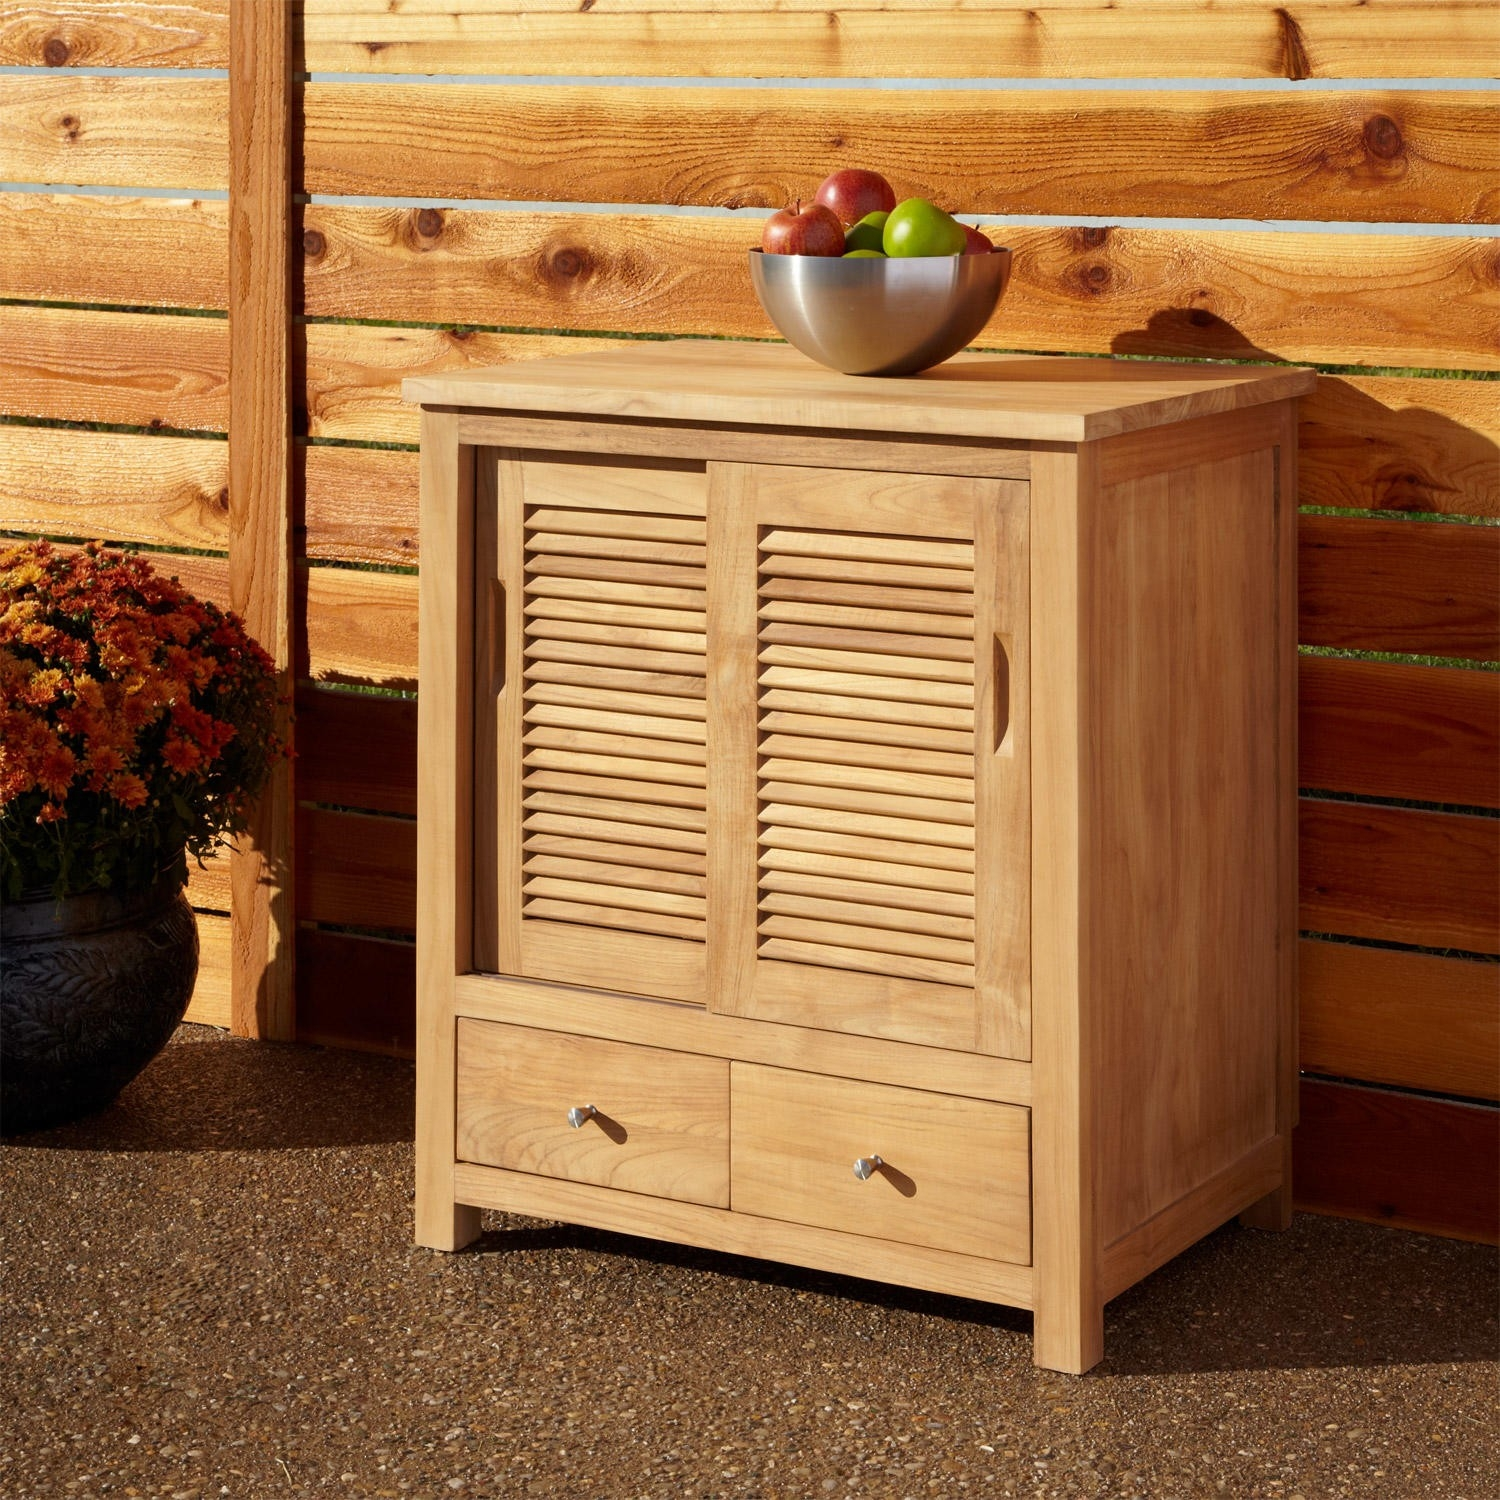 Teak Outdoor Kitchen Cabinet Doors